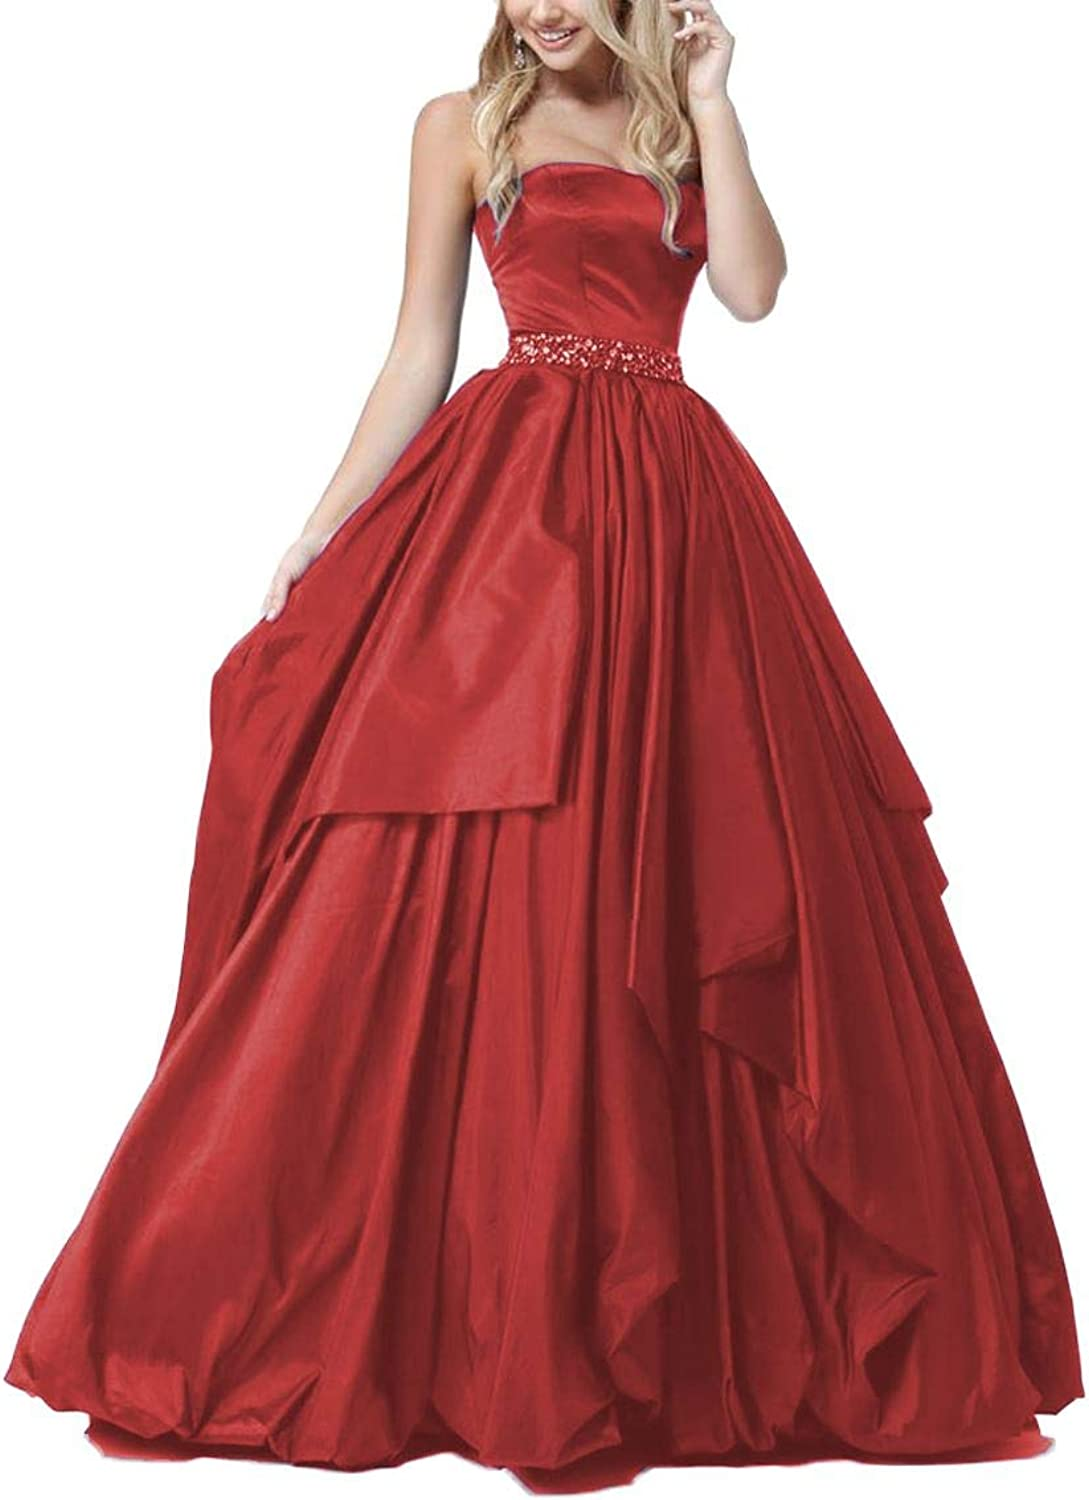 Yisha Bello Women's Beaded ALine Ball Gowns Long Satin Strapless Evening Formal Party Dress